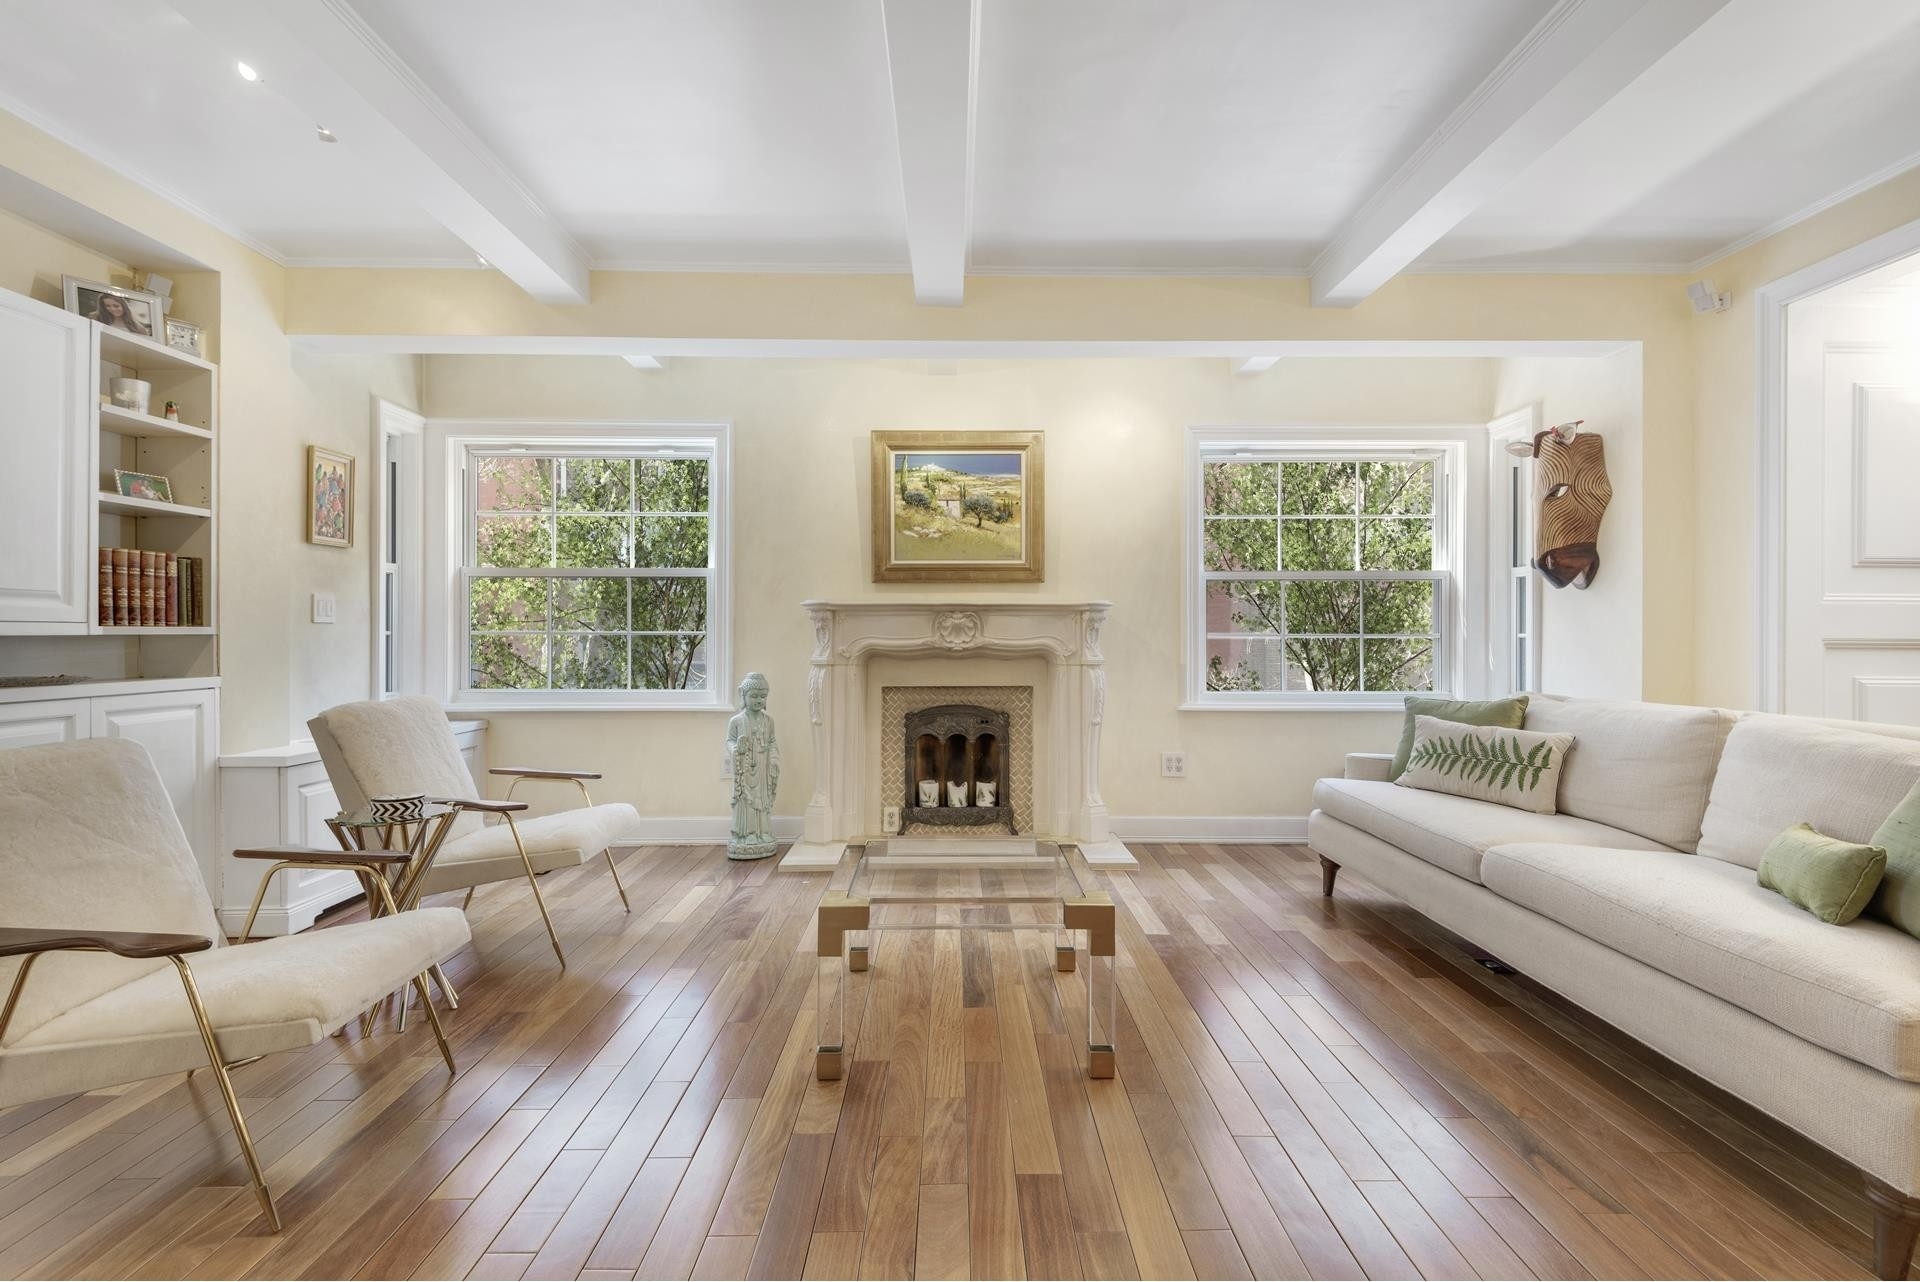 1. Co-op Properties for Sale at Colonial Studios, 39 W 67TH ST , 401402301 Lincoln Square, New York, NY 10023